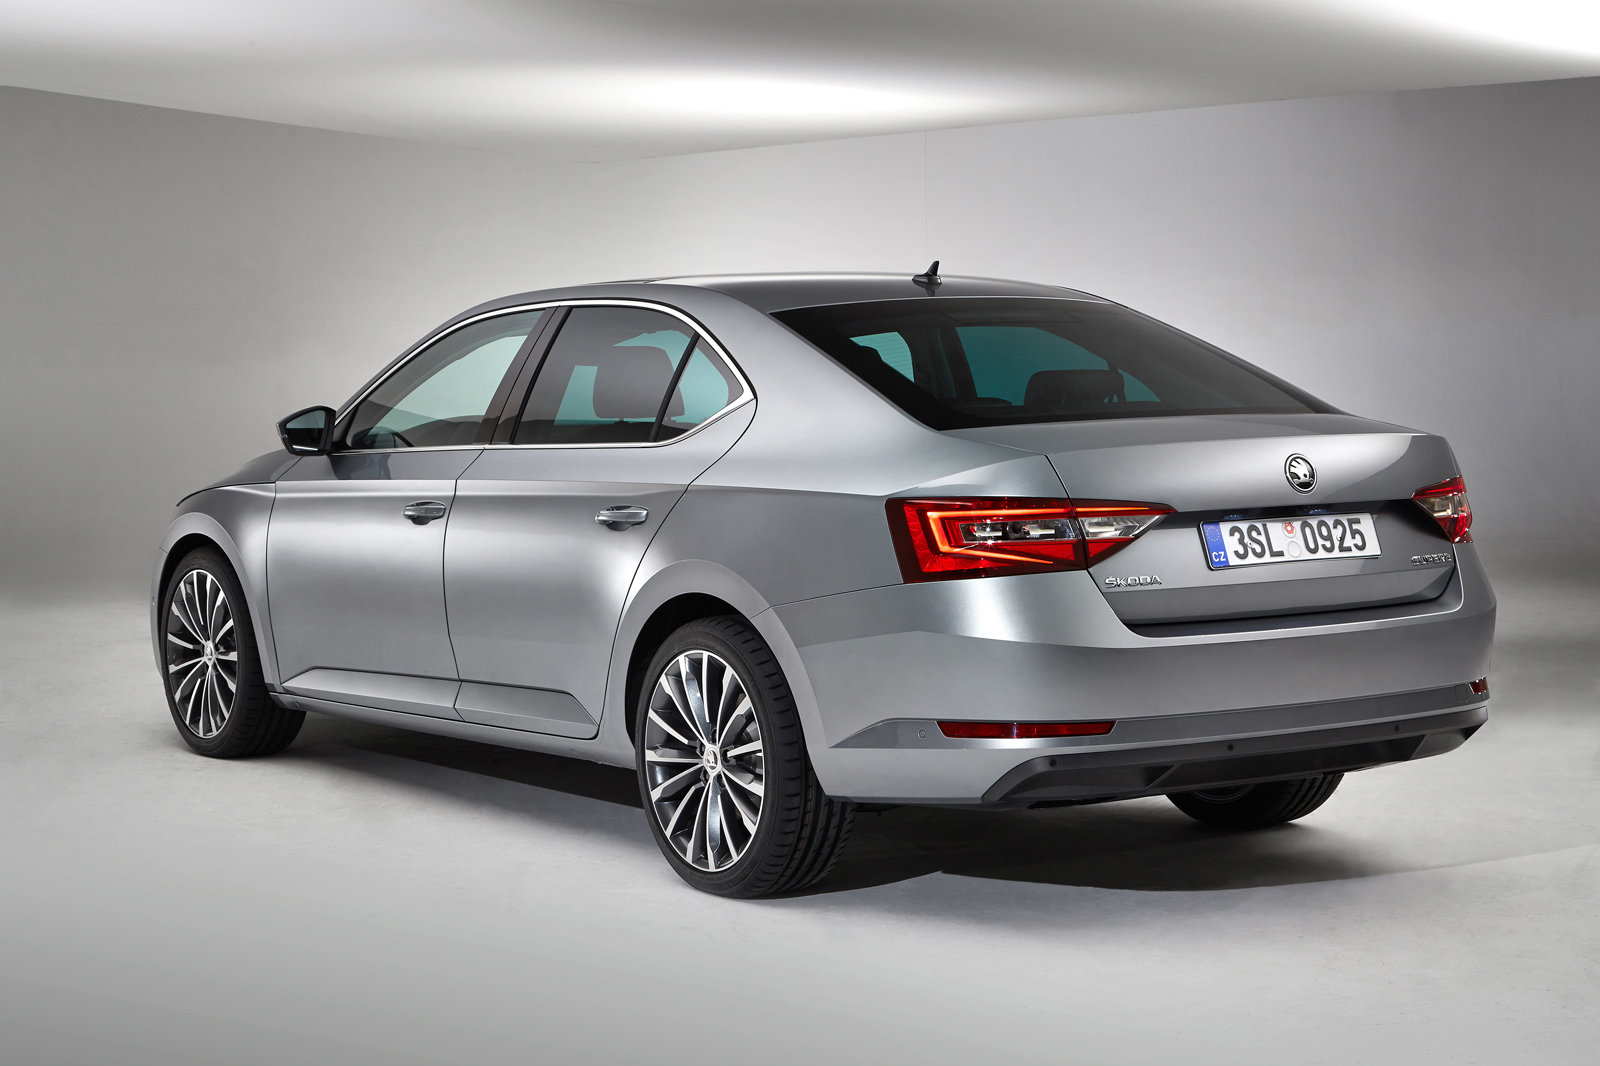 Skoda Superb 2015 - floteauto 5